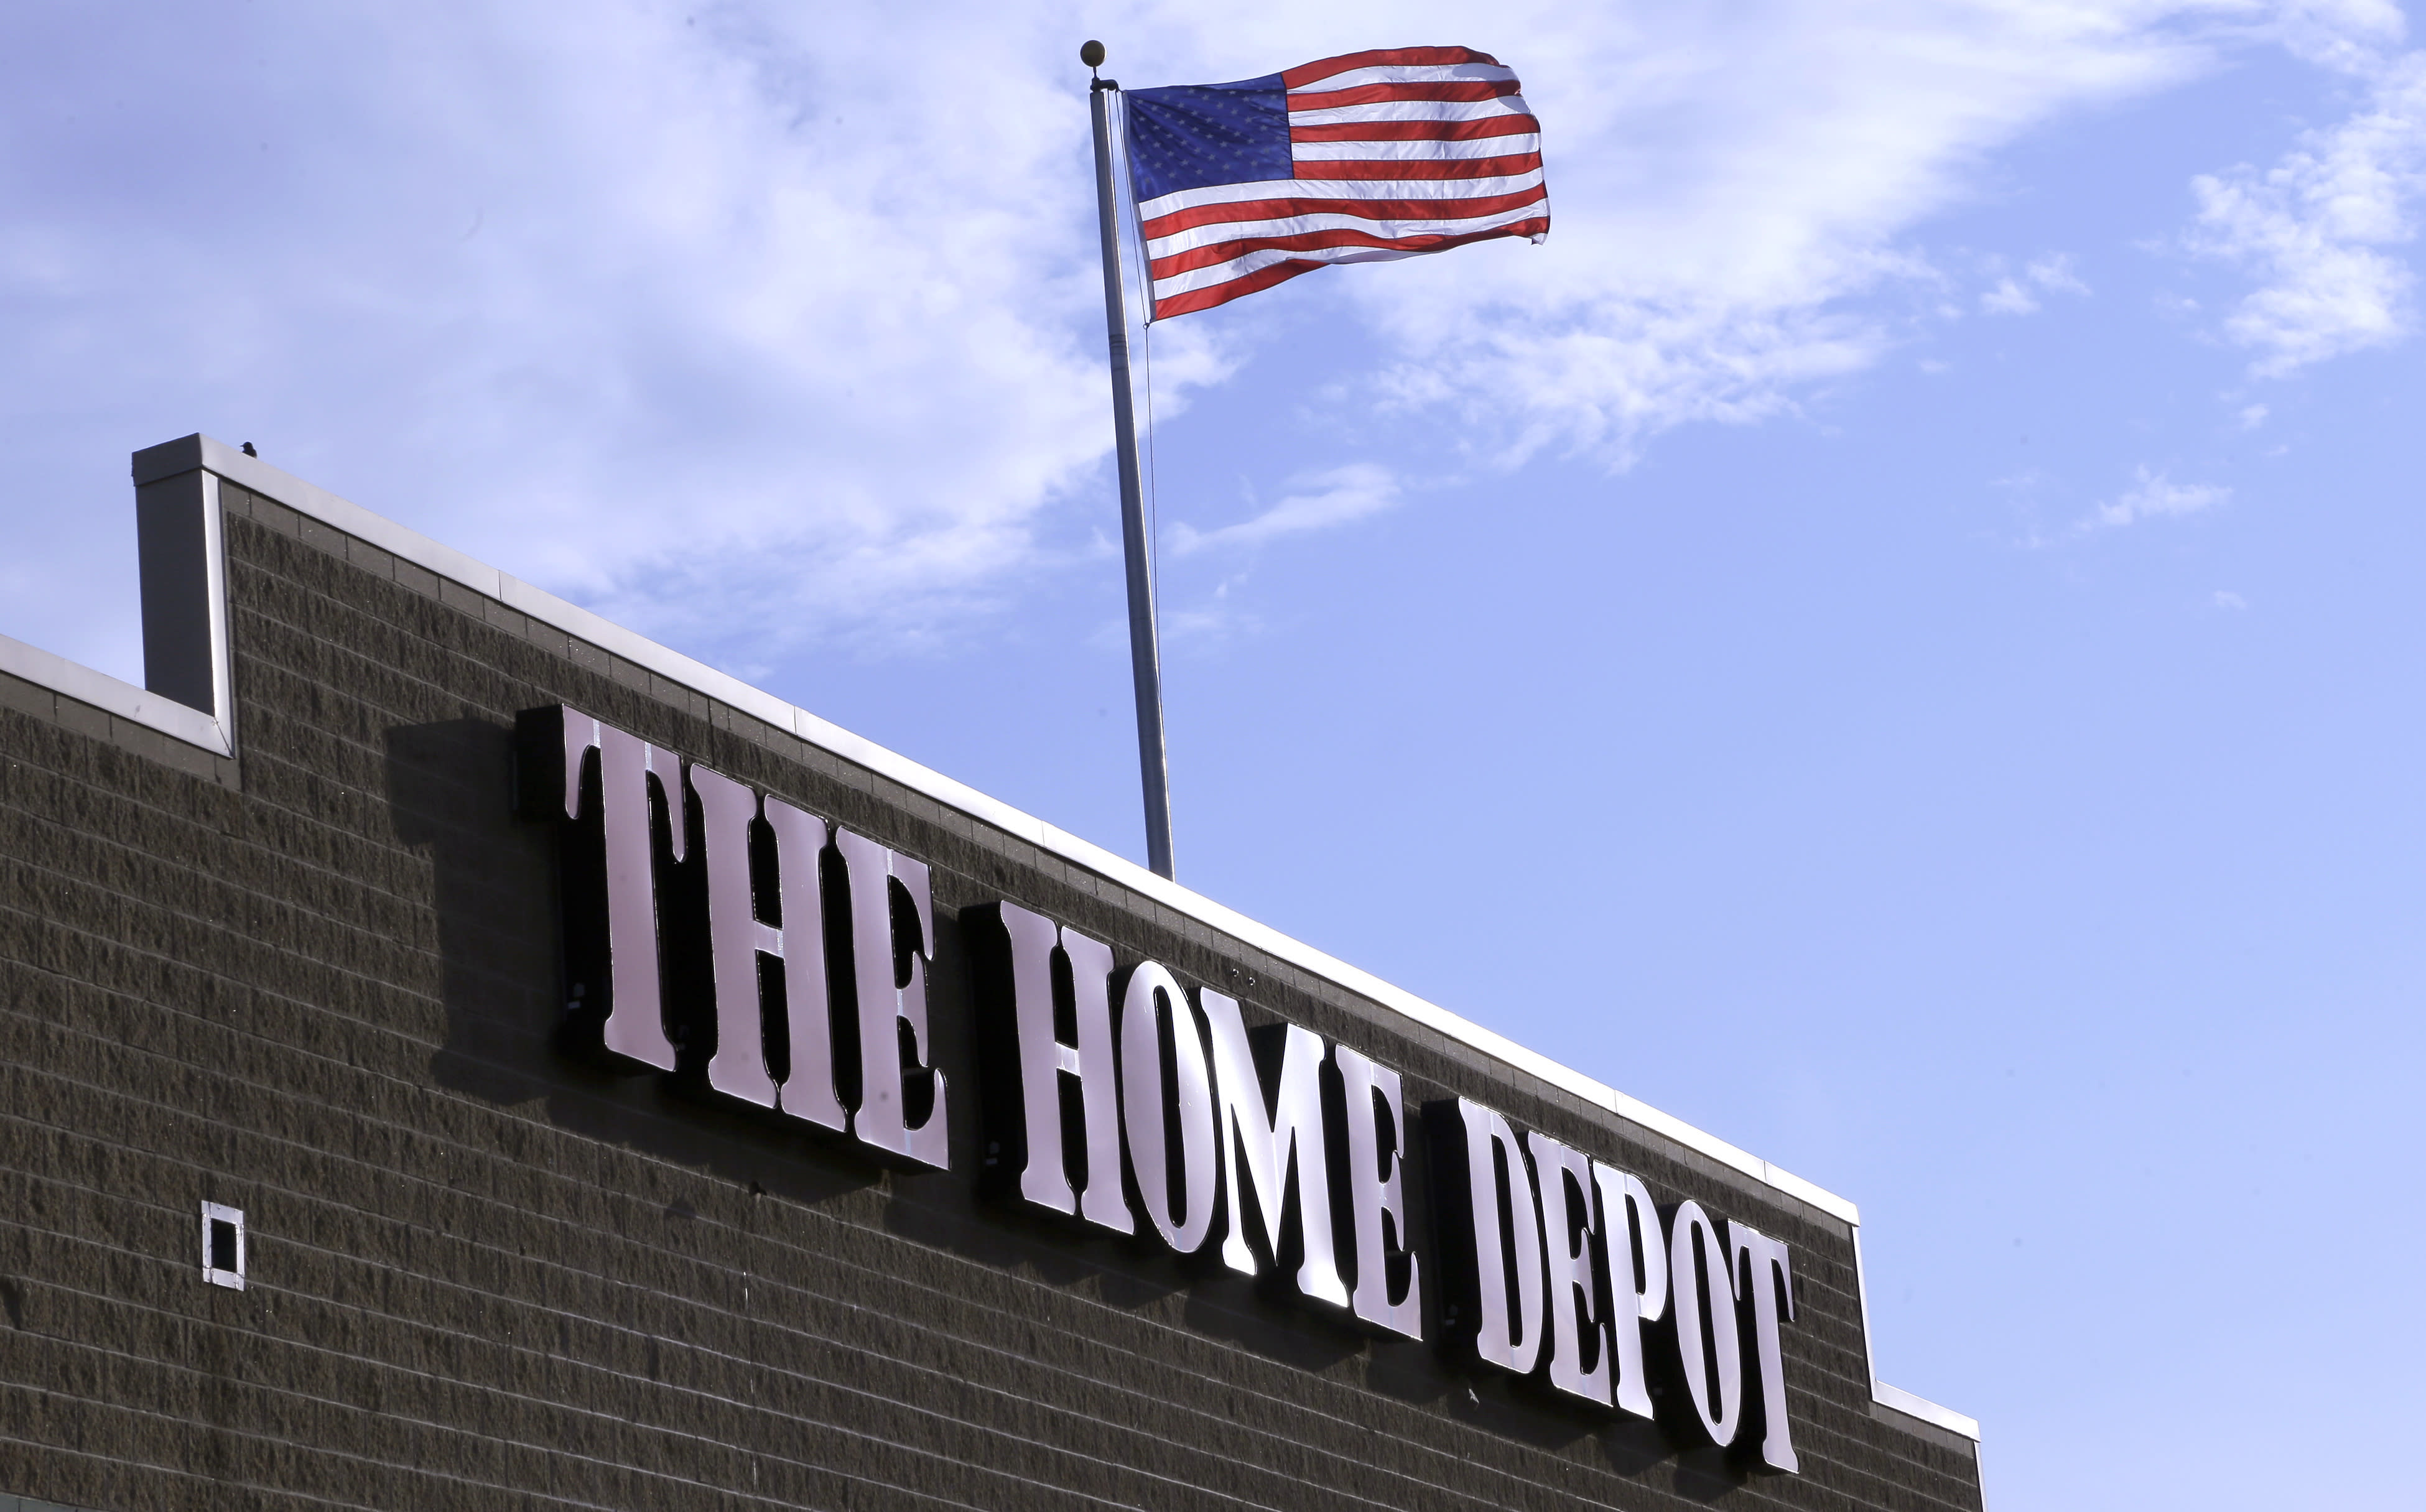 An American flag flies over a Home Depot store location, in Bellingham, Mass. (AP Photo/Steven Senne, File)